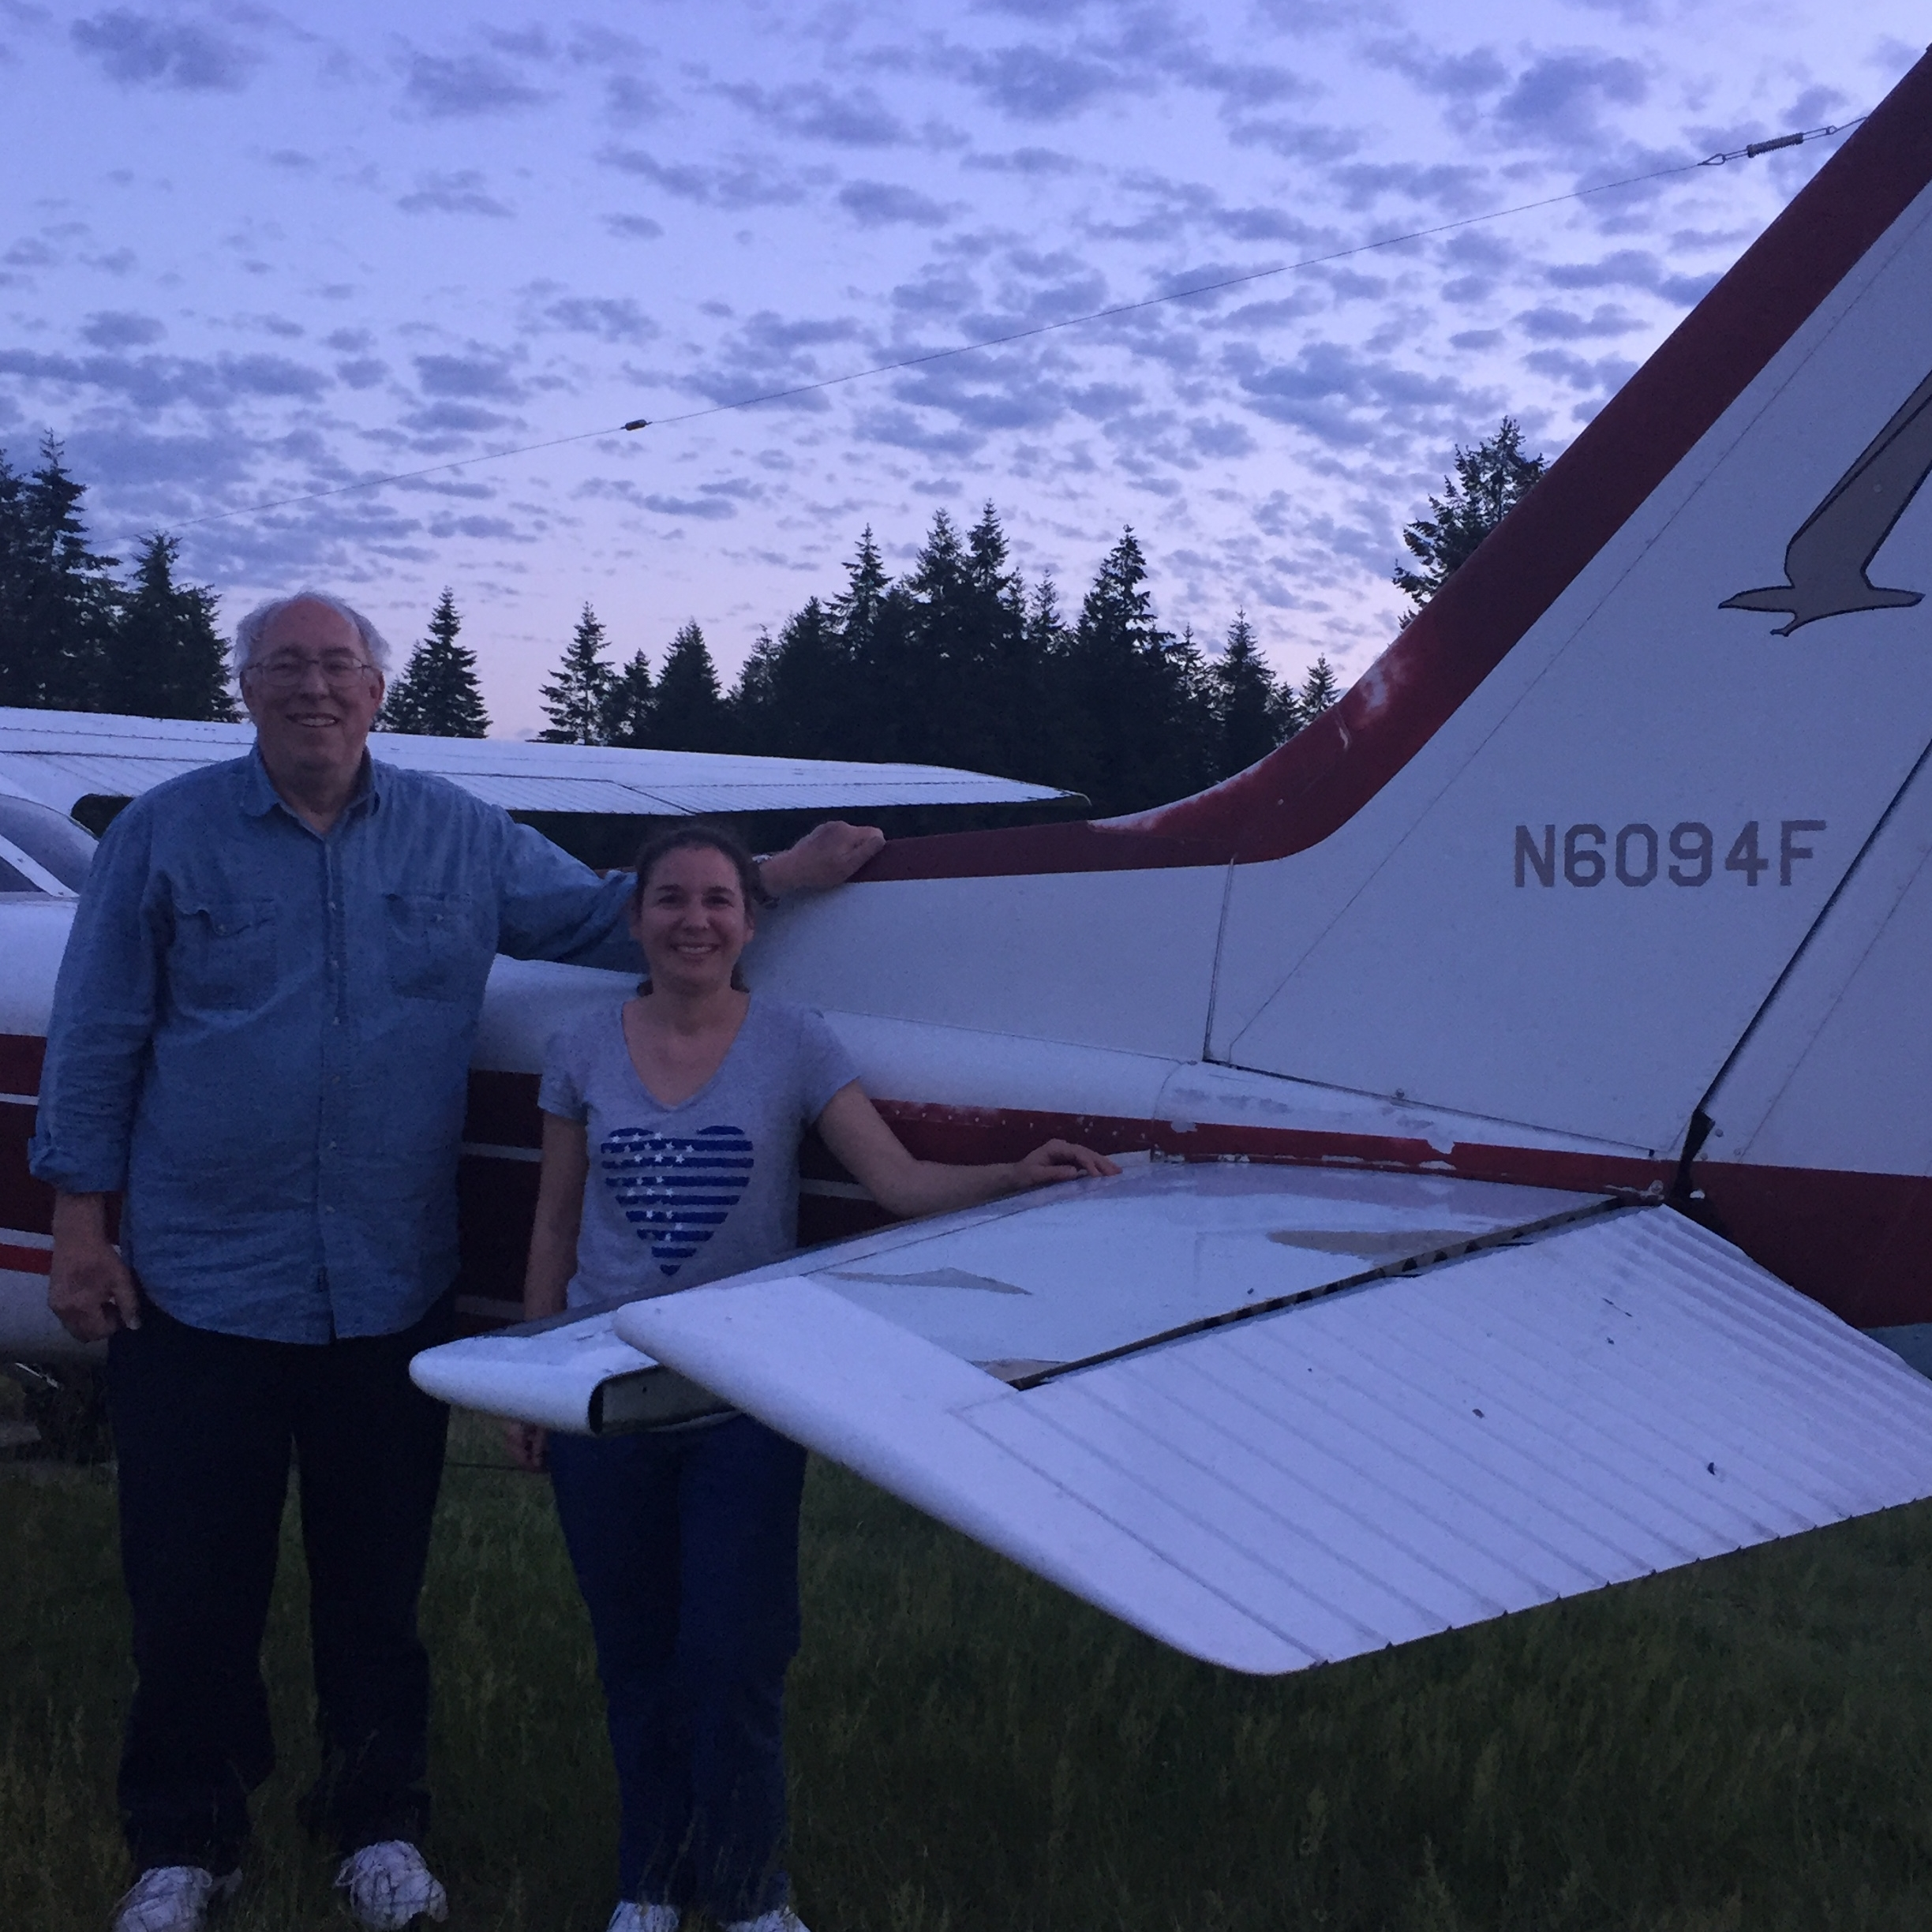 Greater Seattle member Julie Baker with her instructor Dave Lehman on her solo flight 5-29-17. Julie was the 2017 recipient of the Nancy K. Jensen Memorial Scholarship that is offered to women student pilots through the Greater Seattle Ninety-Nines.